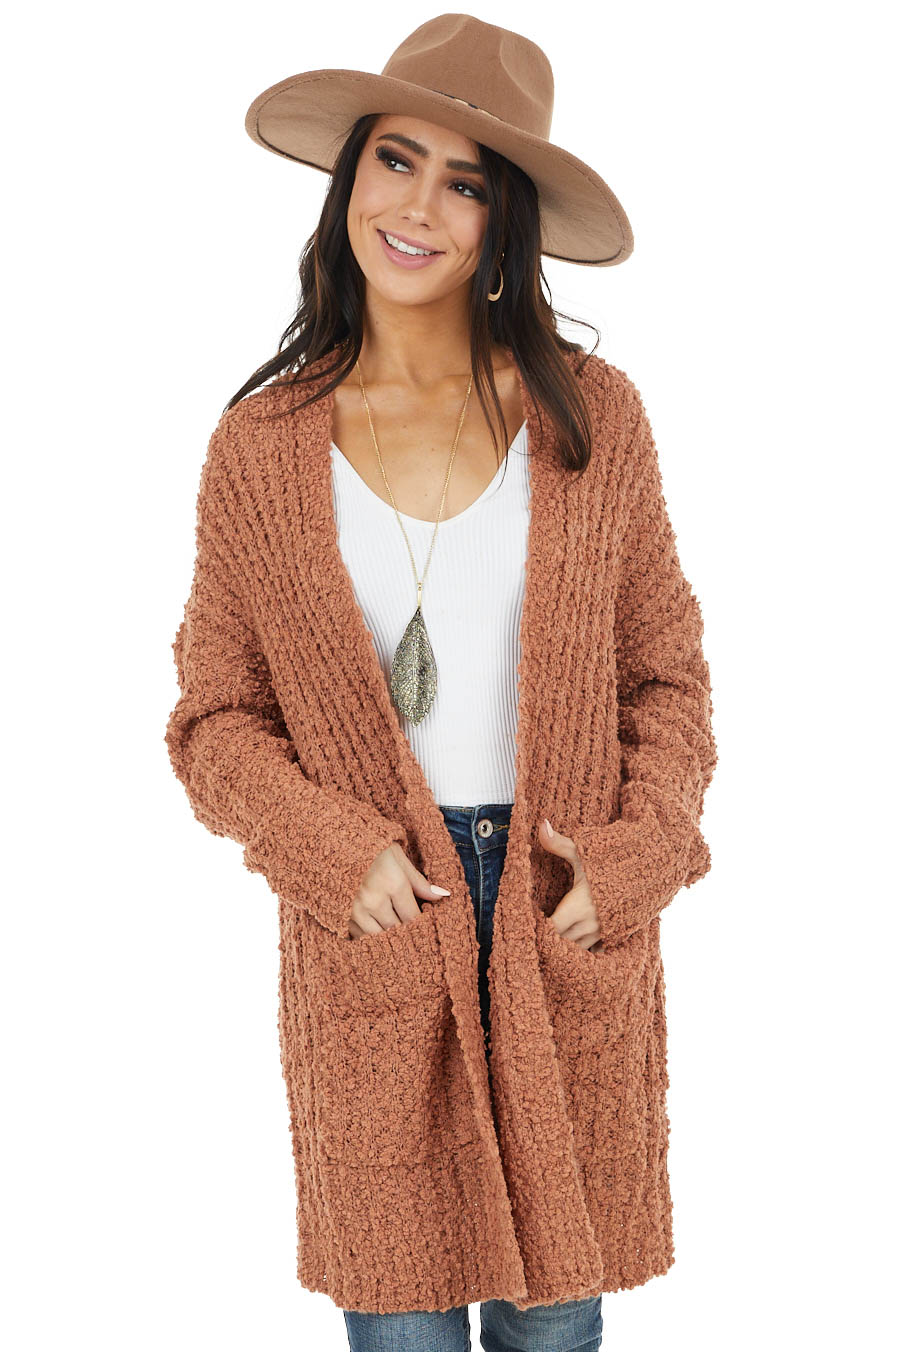 Cognac Popcorn Knit Open Front Cardigan with Pockets